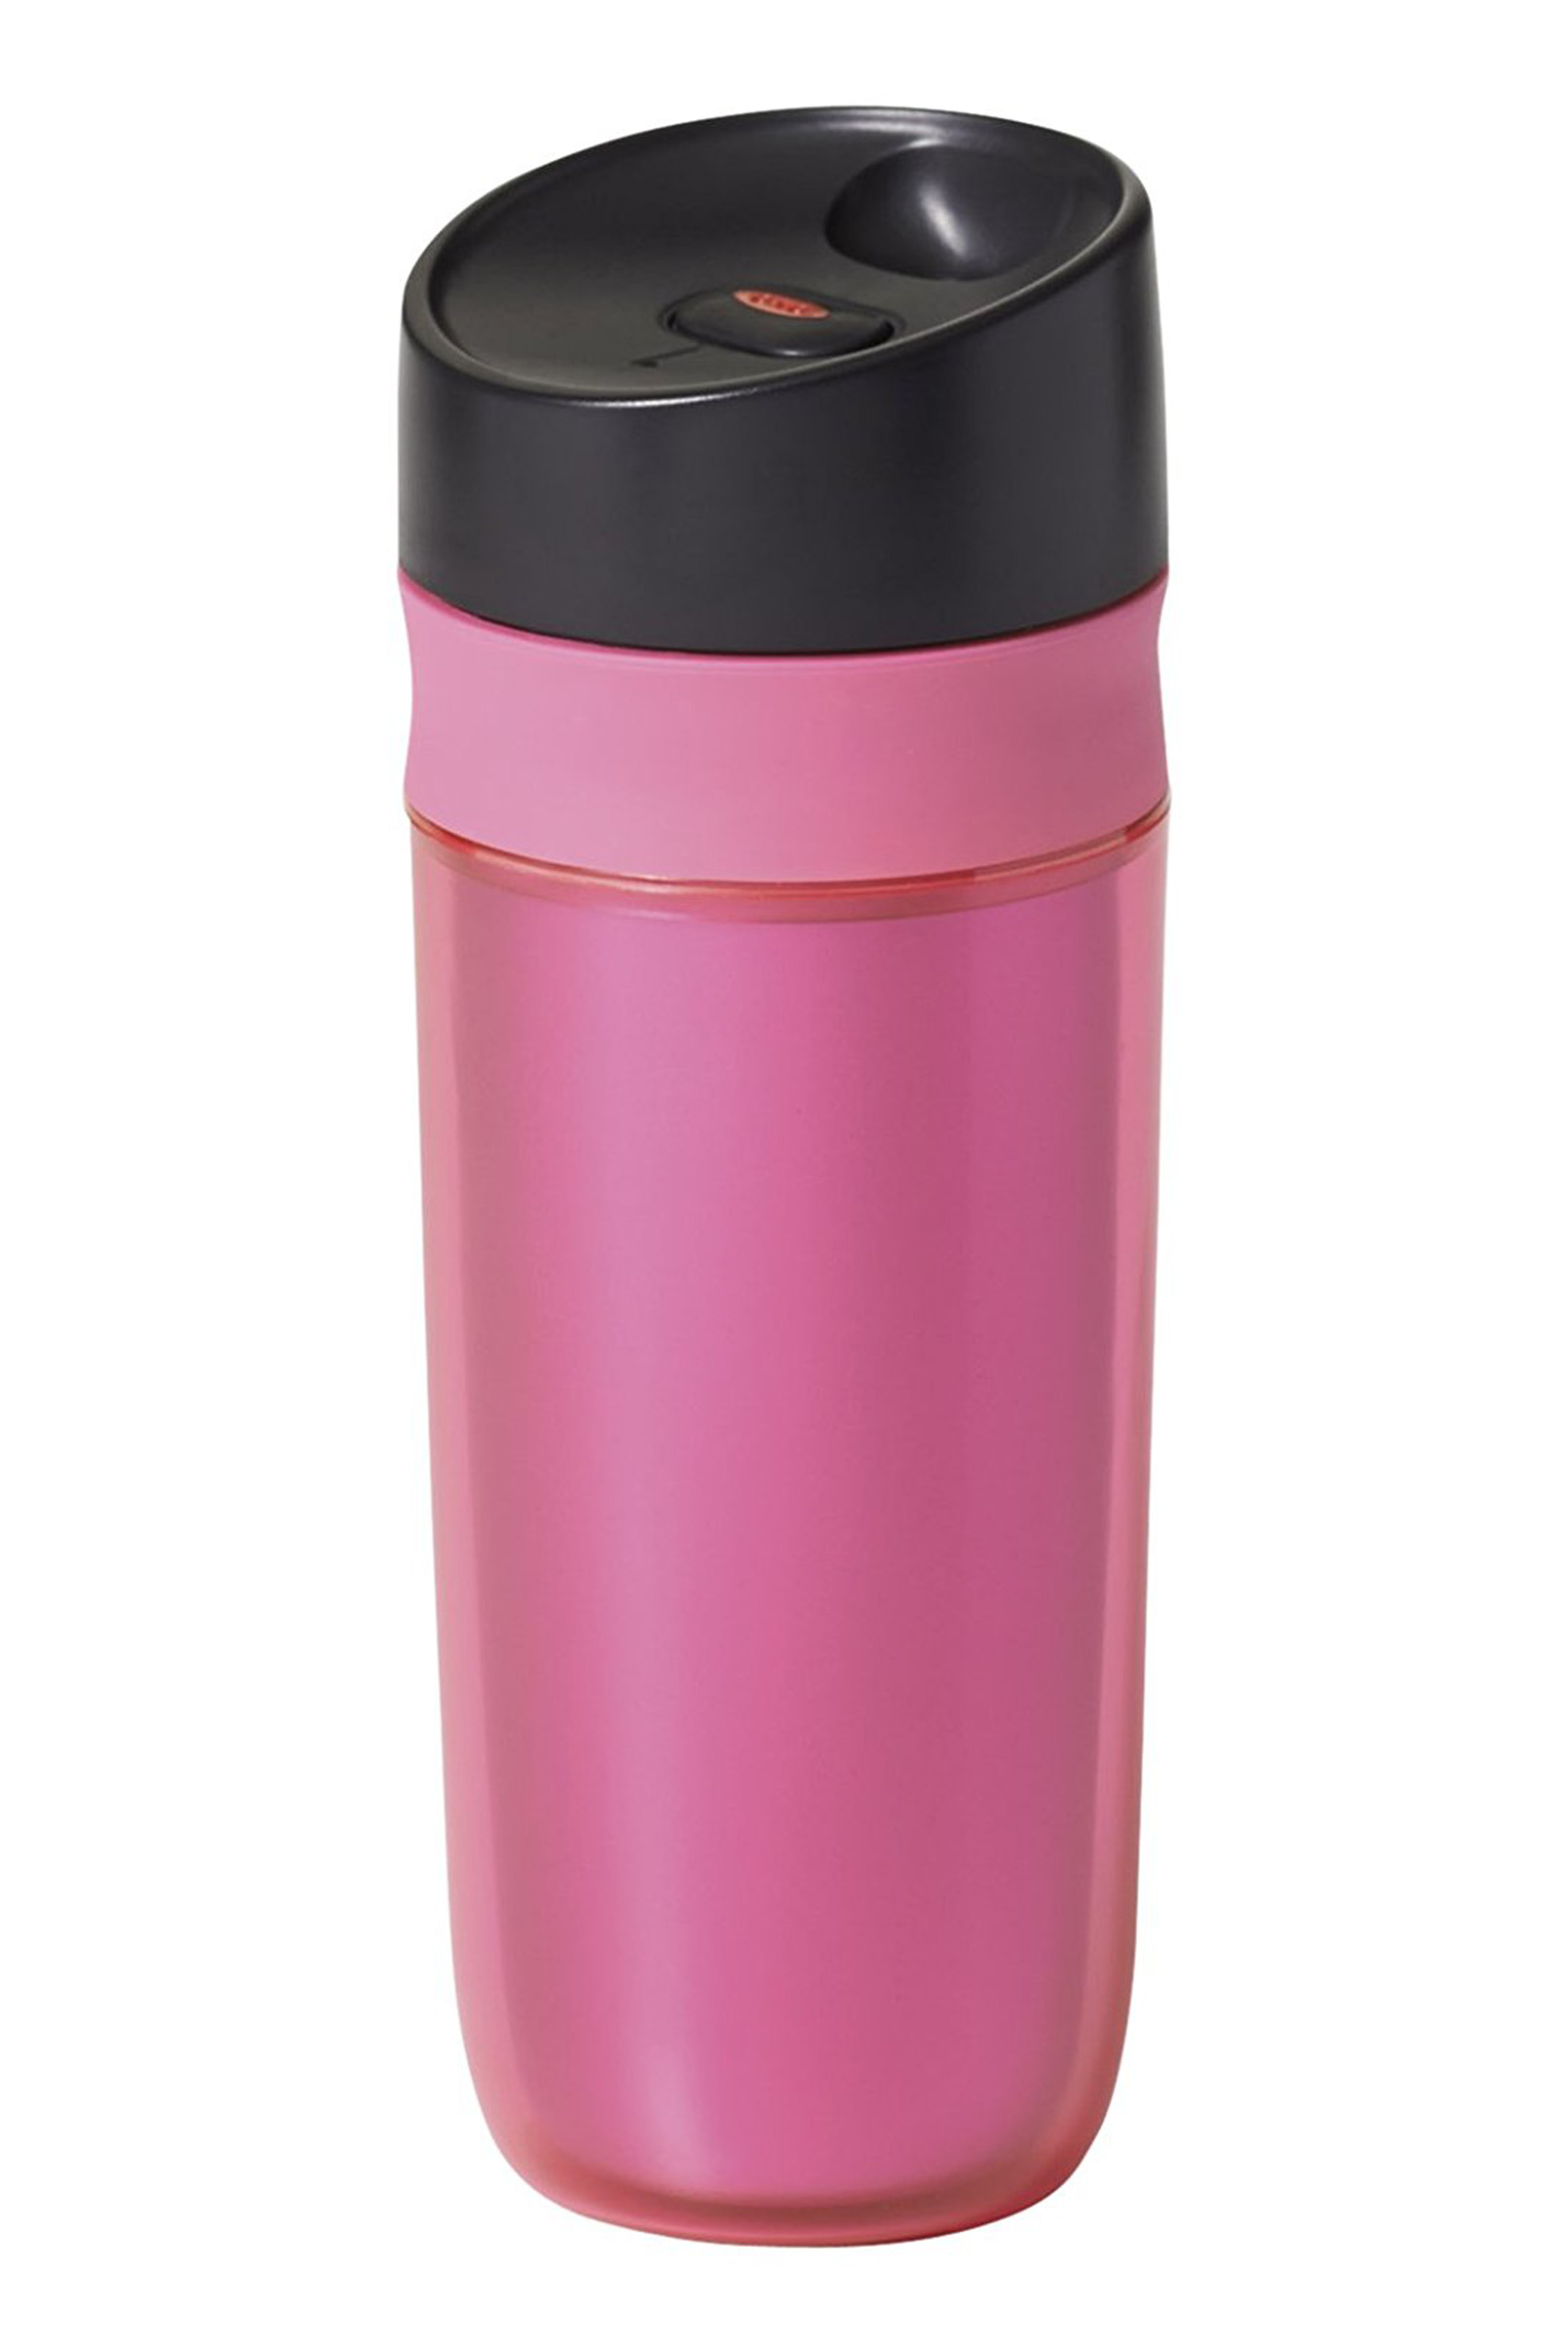 22 Best Travel Coffee Mug Reviews 2018 Top Rated Insulated Mugs